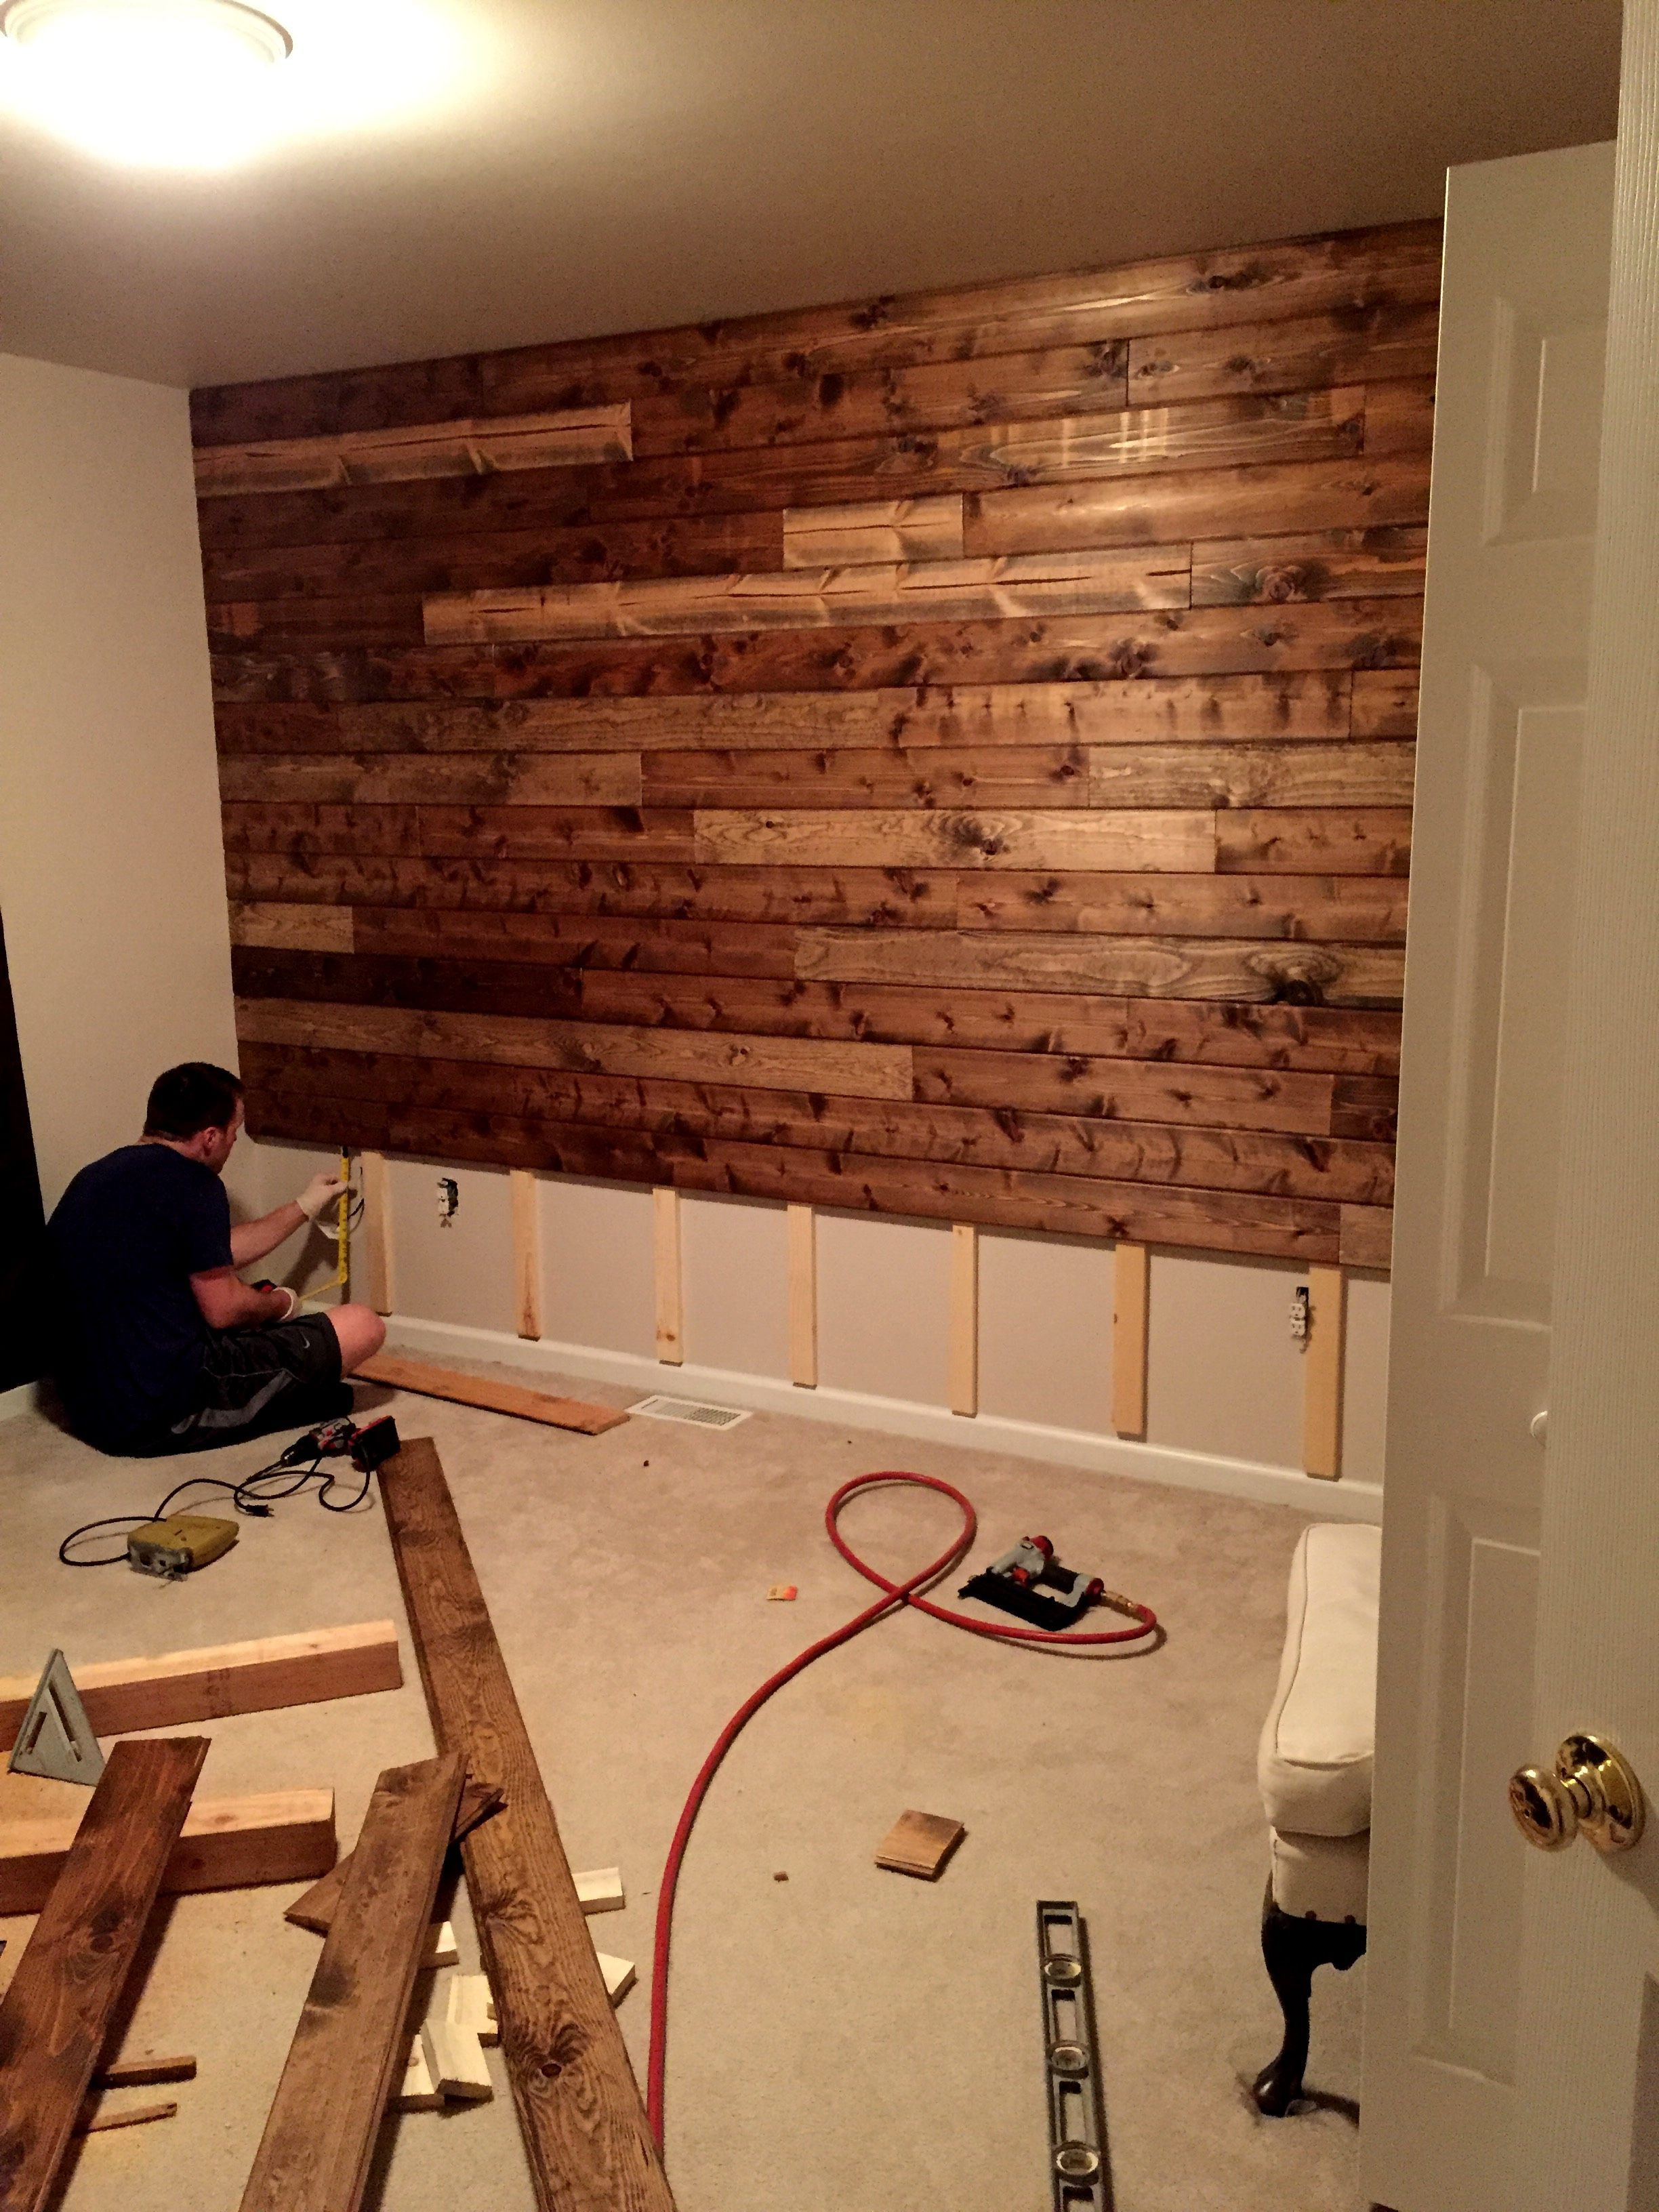 Home Decor Diy Ideas In 2020 Wooden Accent Wall Diy Accent Wall Home Diy